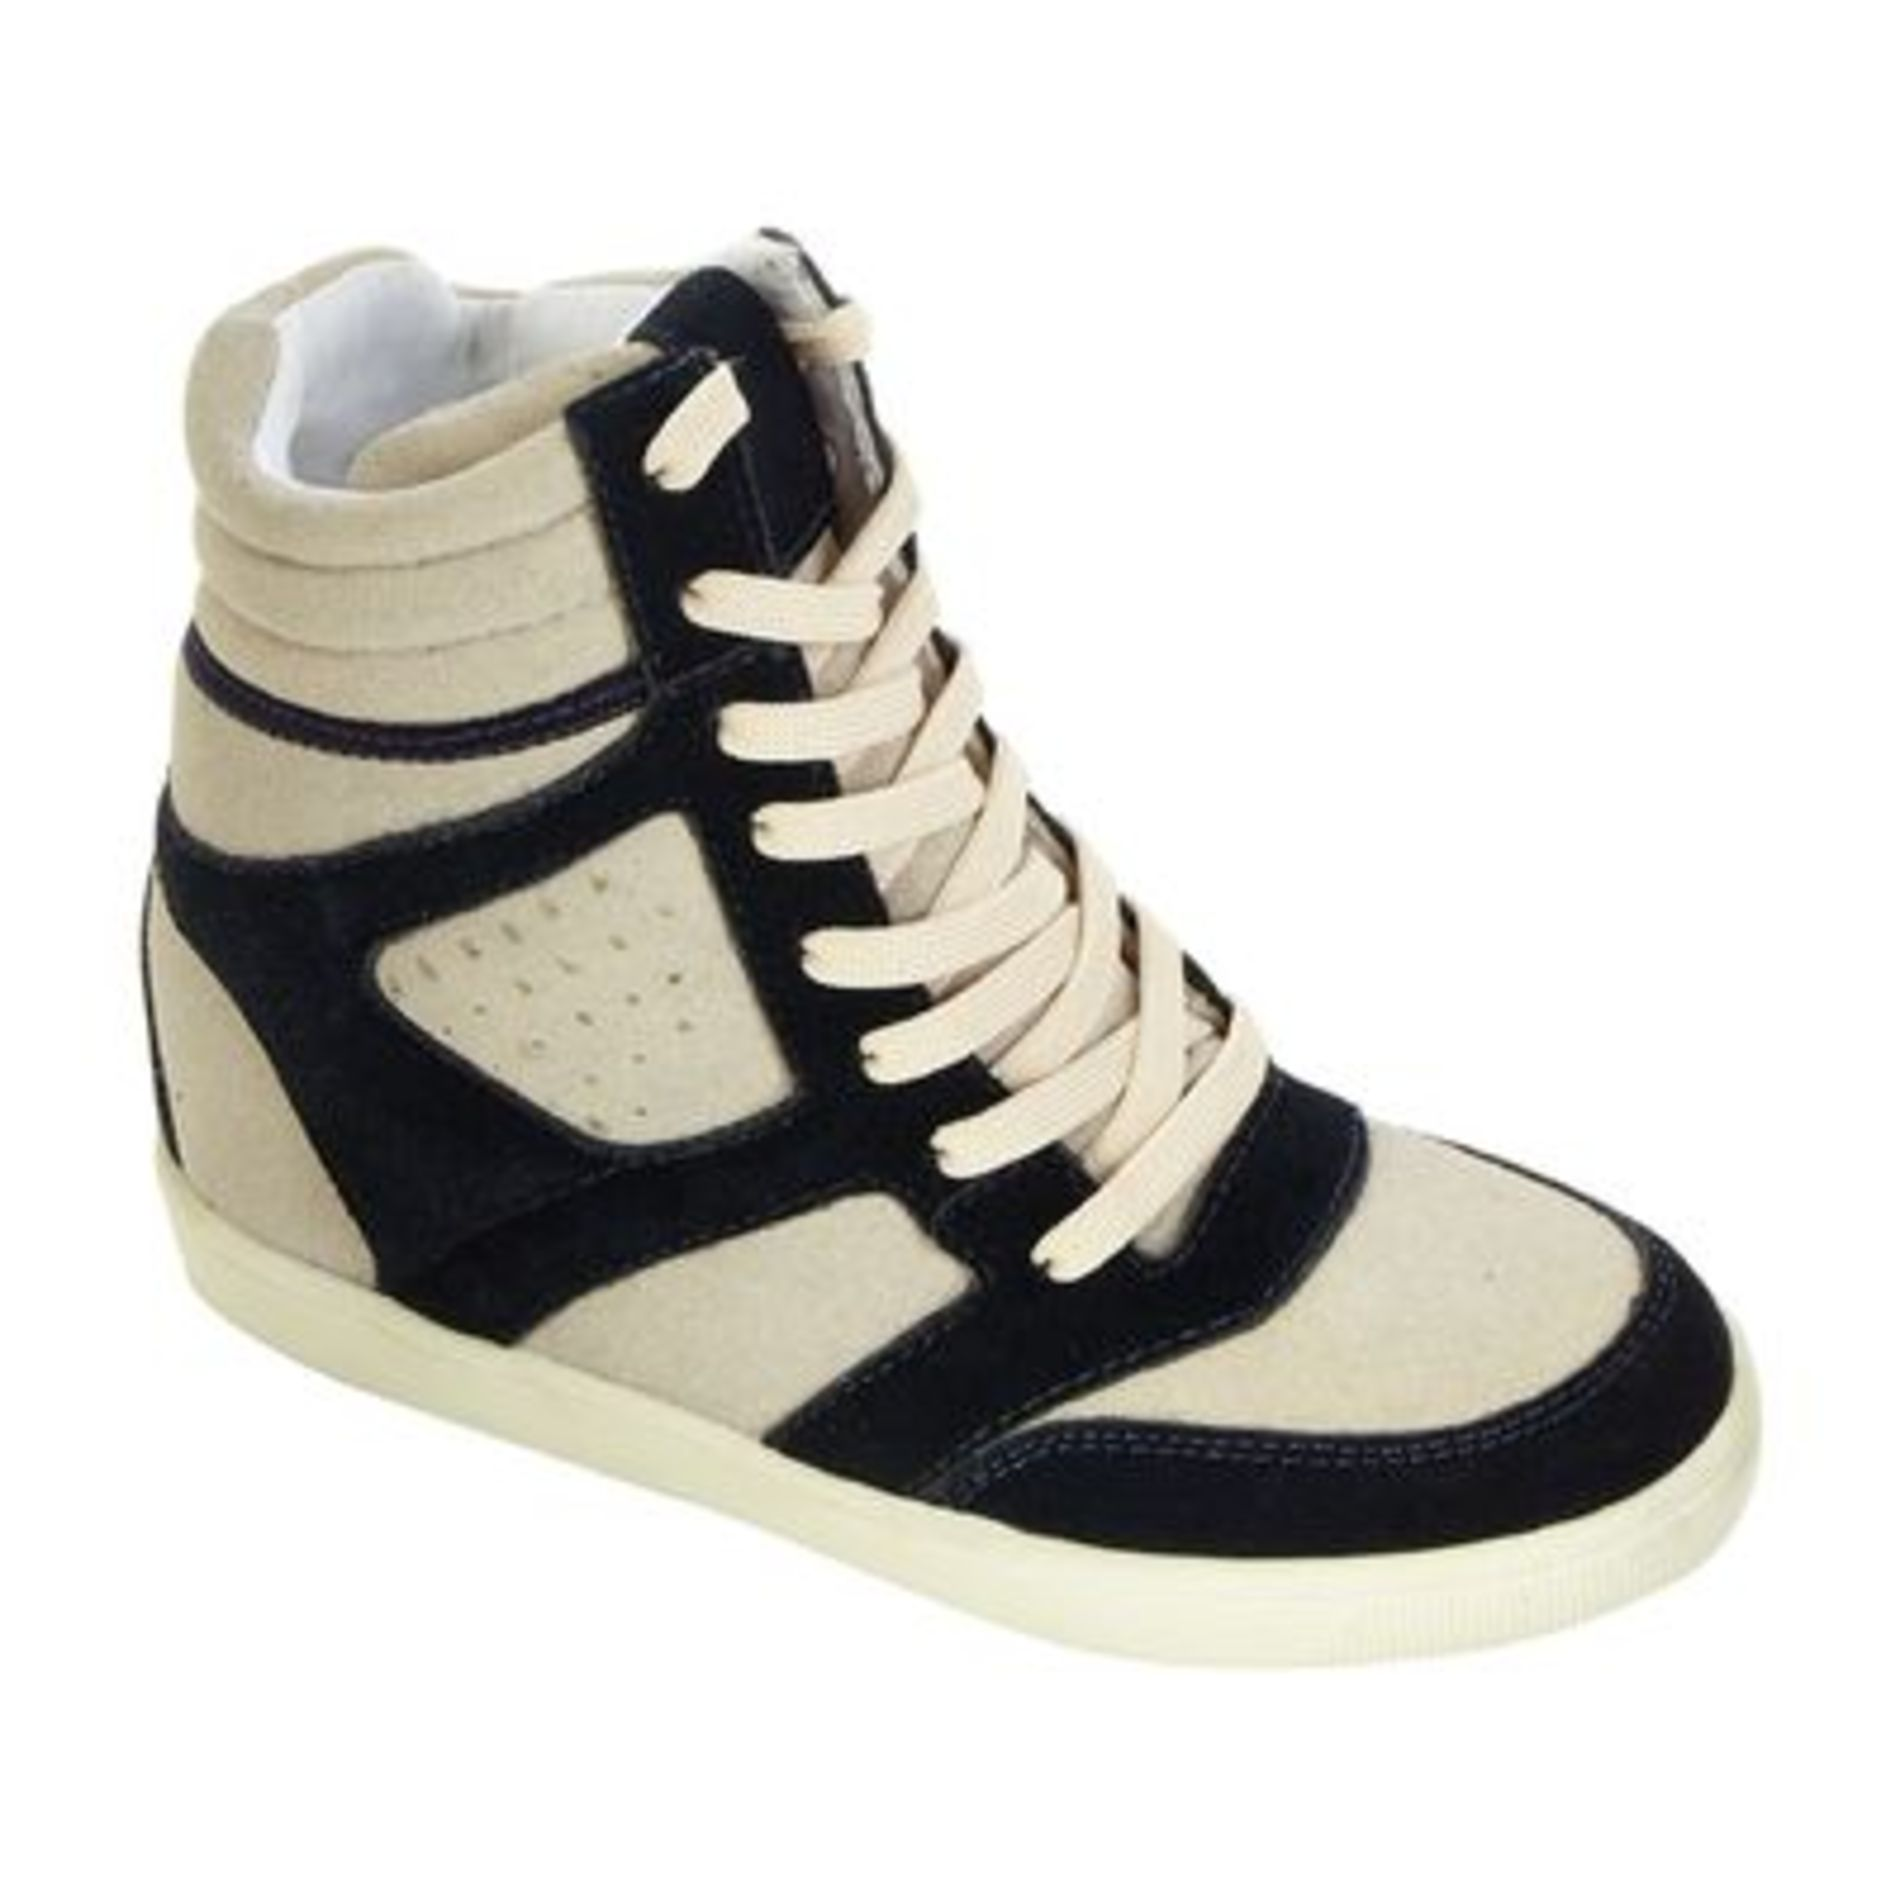 Women's ZG12096-01 Eden Casual High Top - Navy Suede